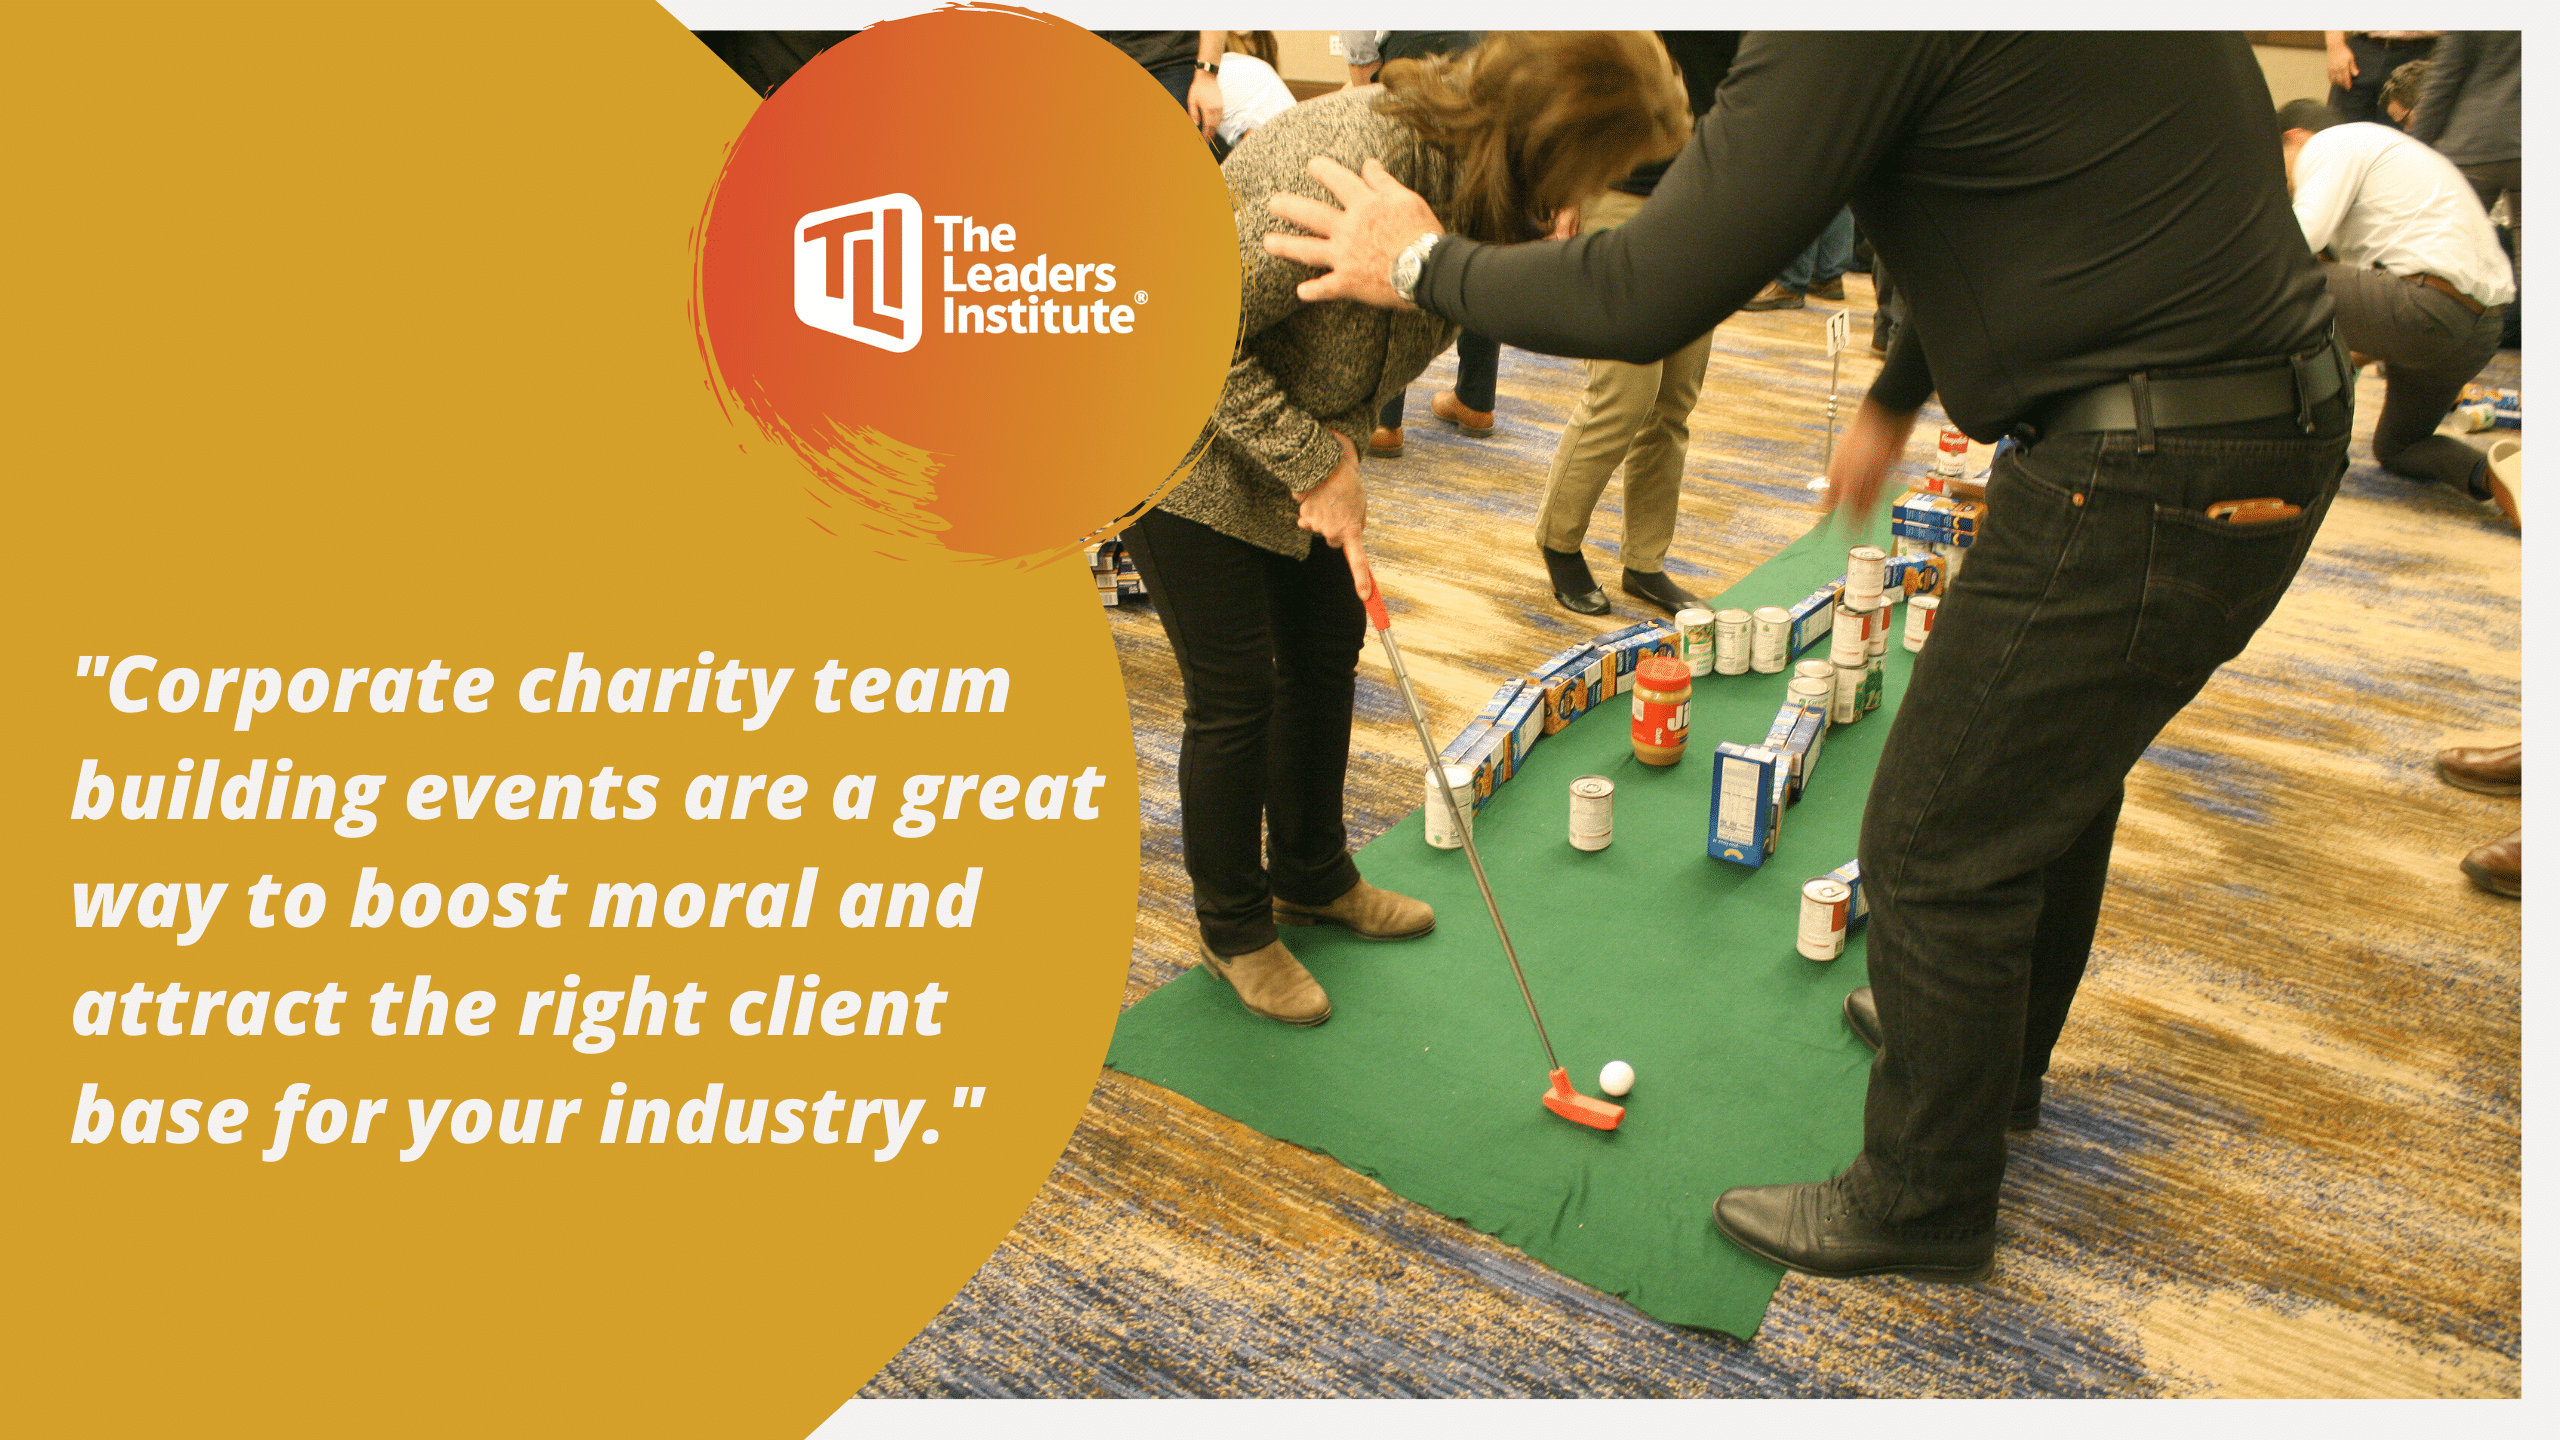 Charity Team Building Events Boost Morale